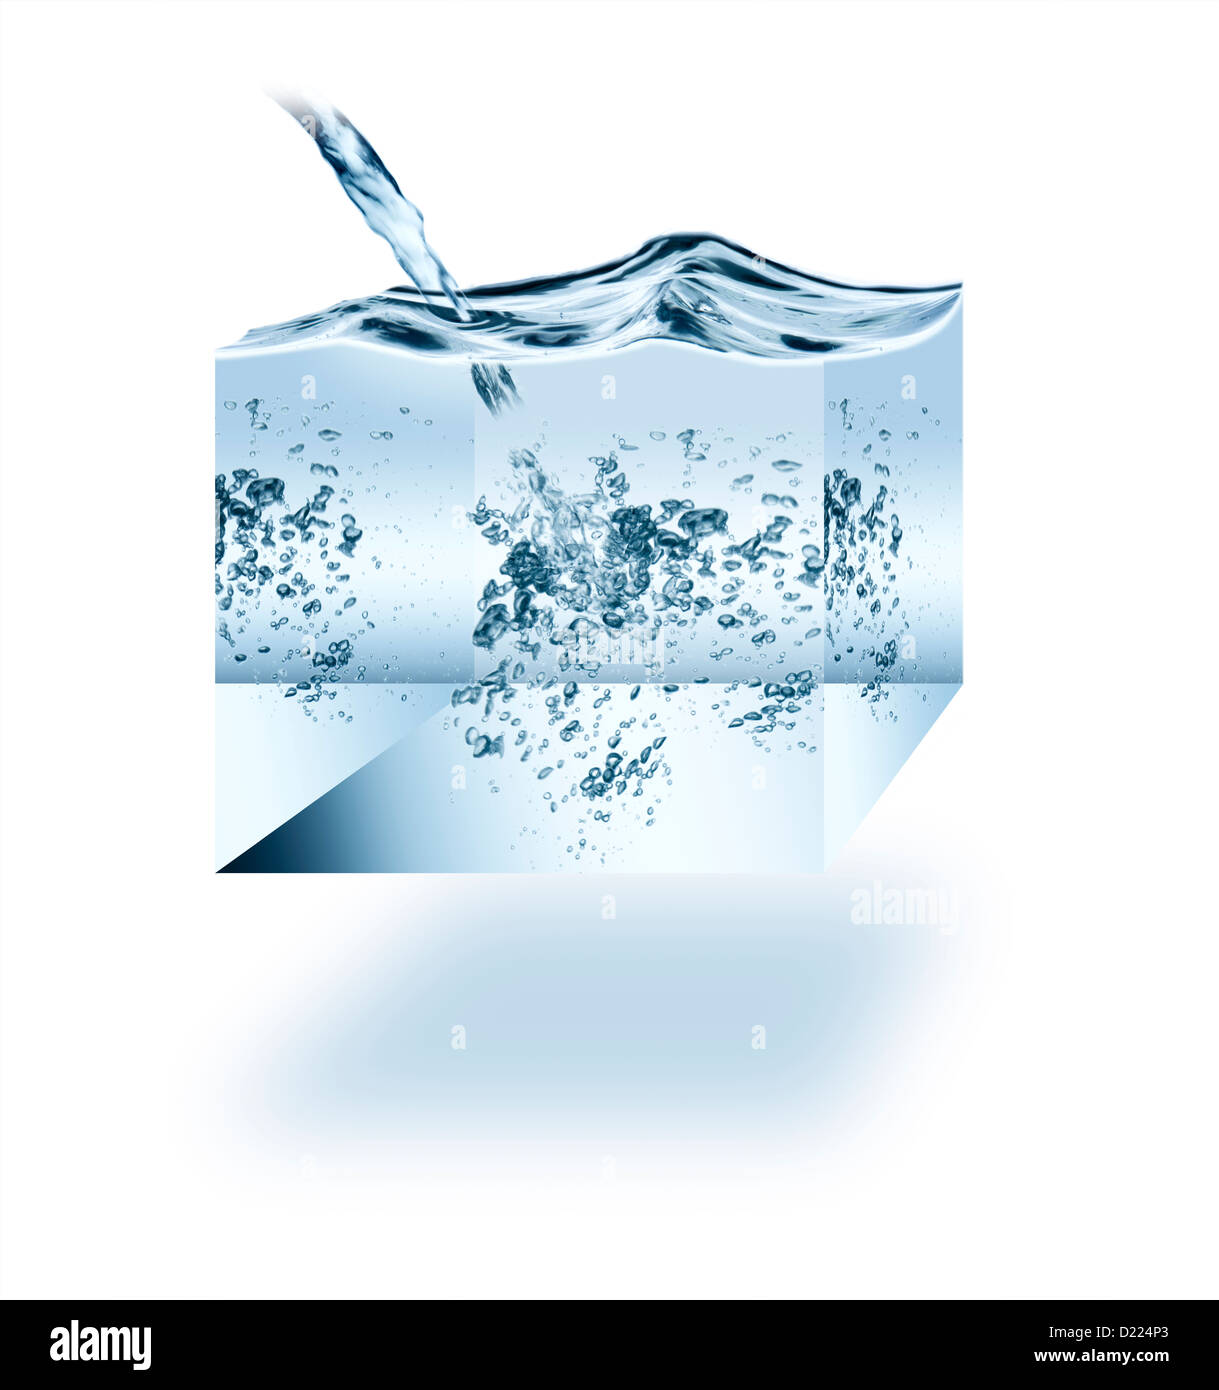 Cube of water against a white background - Stock Image